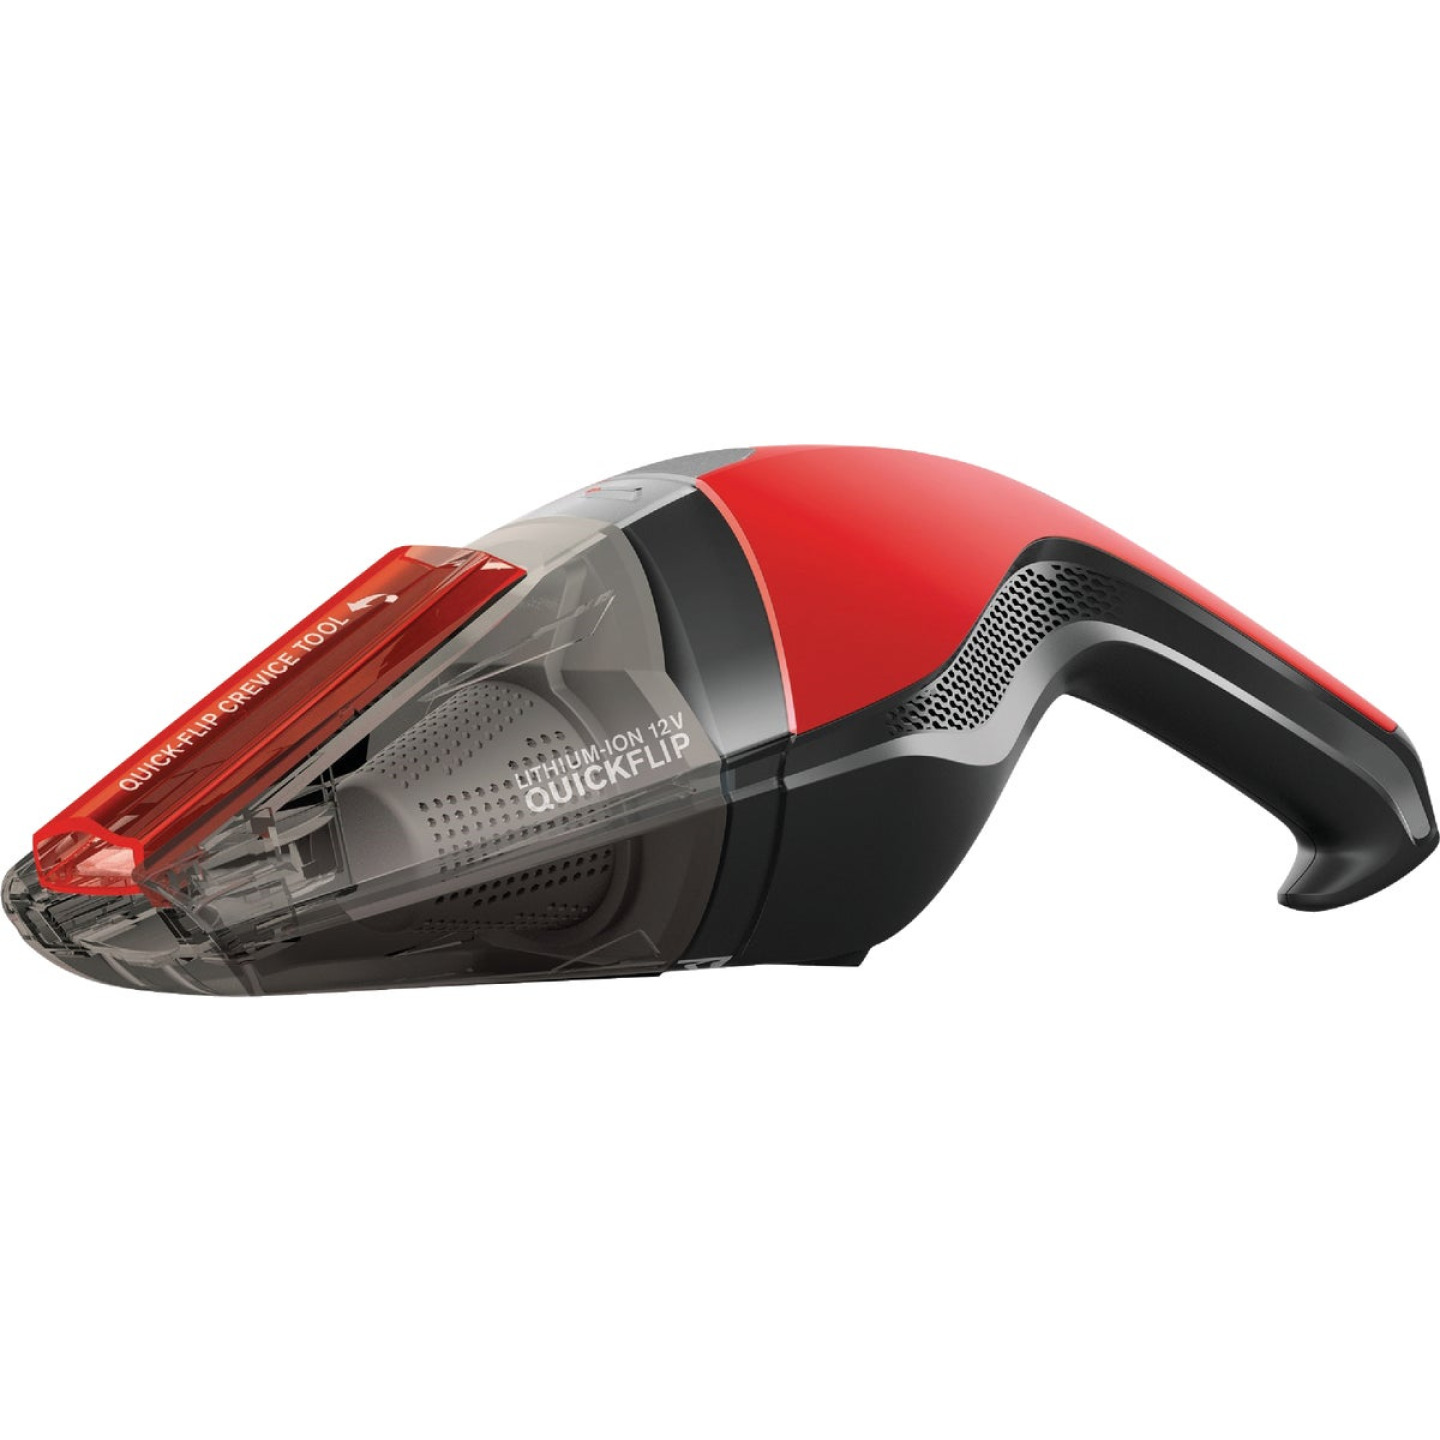 Dirt Devil QuickFlip 12V Bagless Hand Vacuum Cleaner Image 1